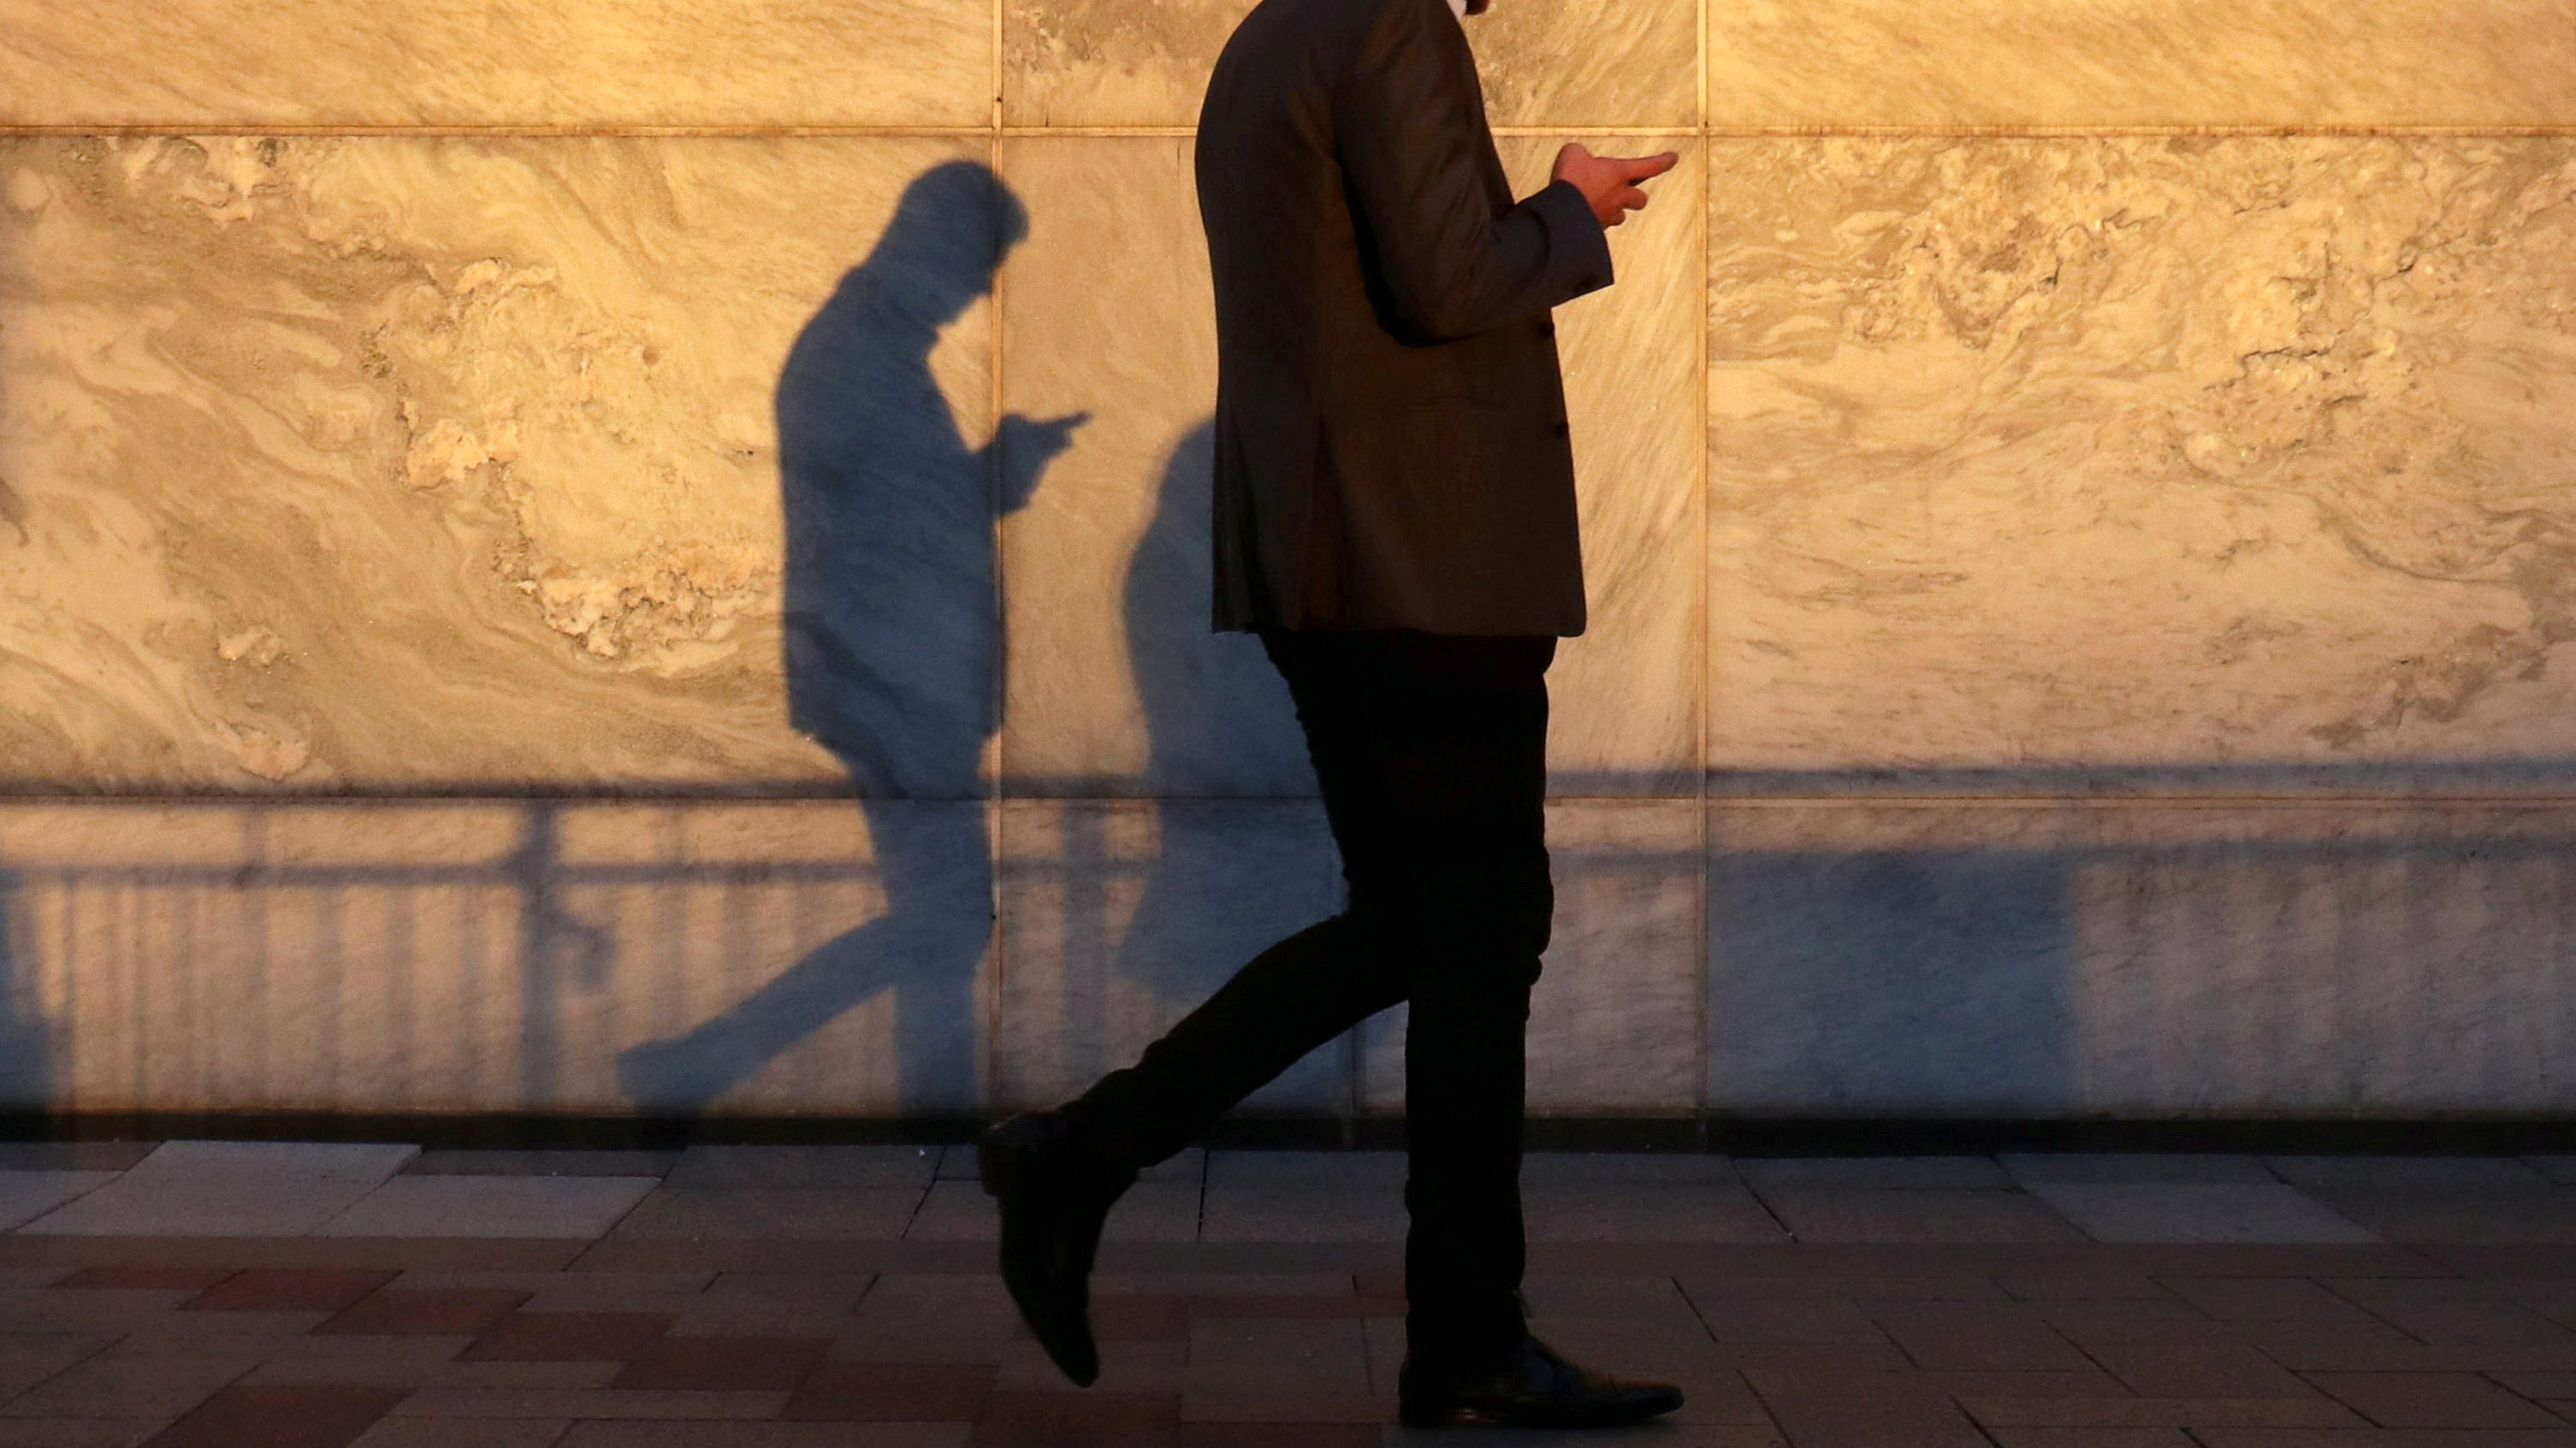 An unidentified man using a smart phone walks through London's Canary Wharf financial district in the evening light in London